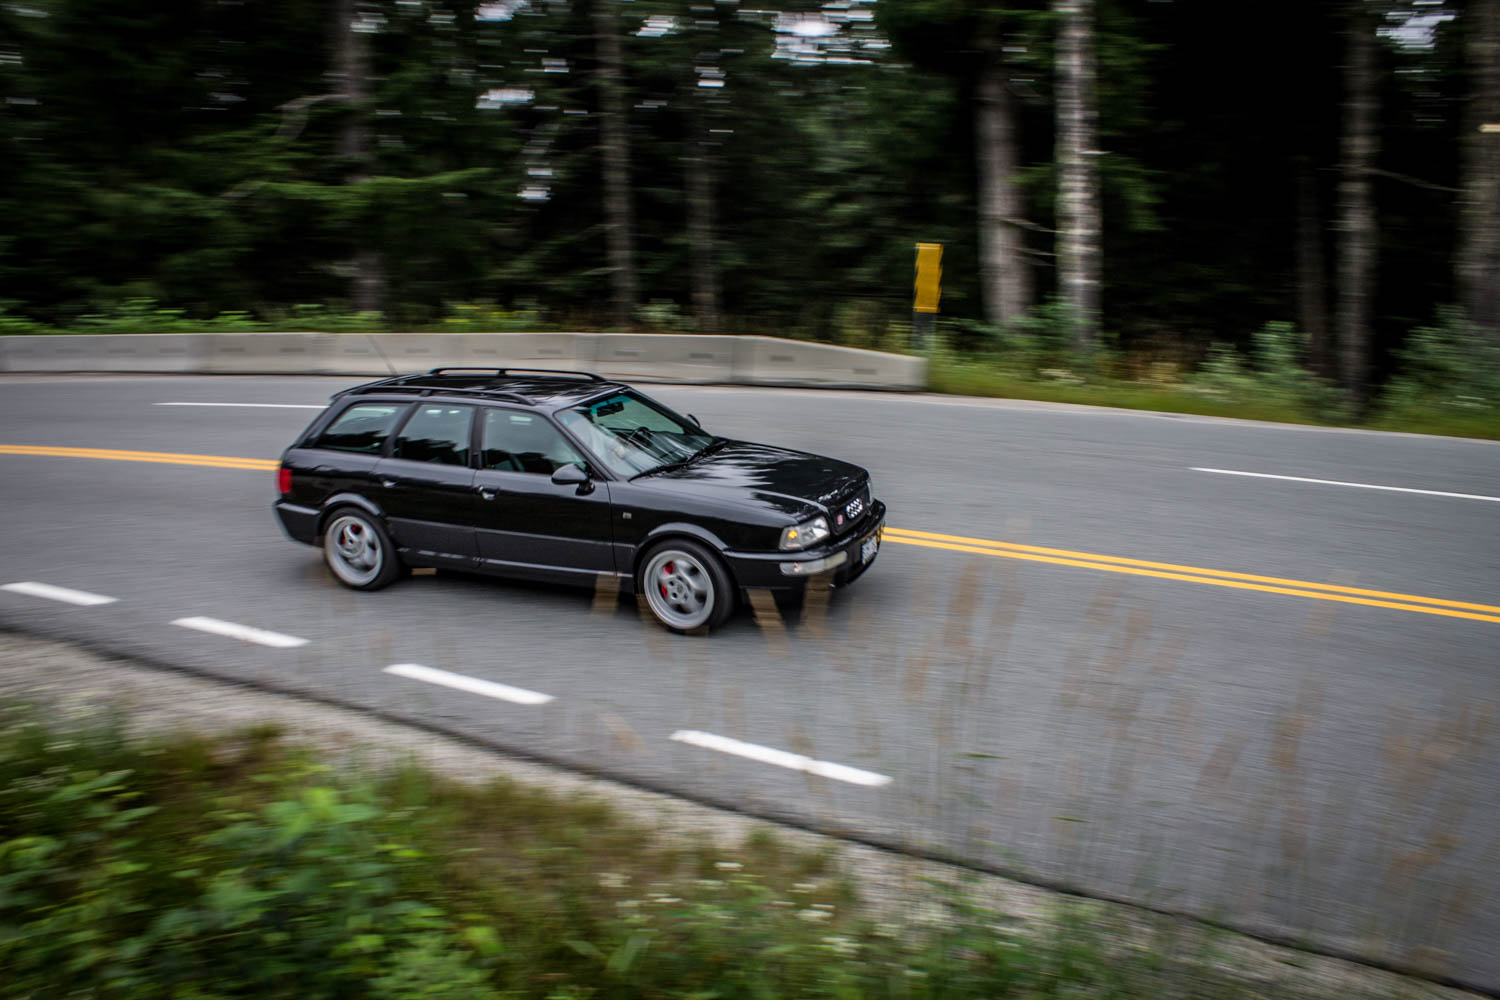 Audi RS2 driving